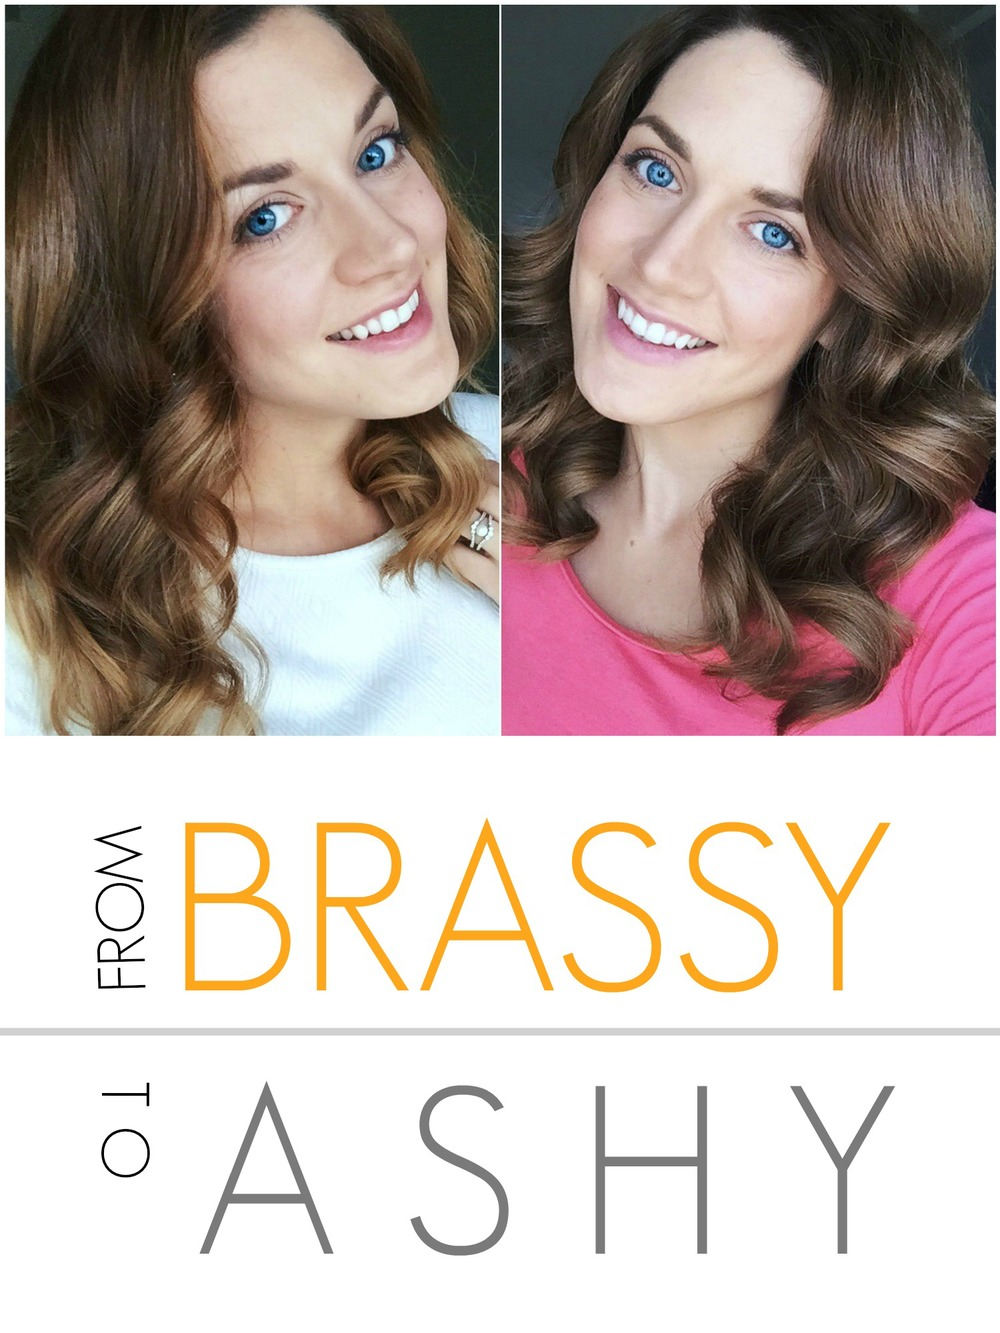 From Brassy to Ashy || Styled by Cheree || A Dash of Salter